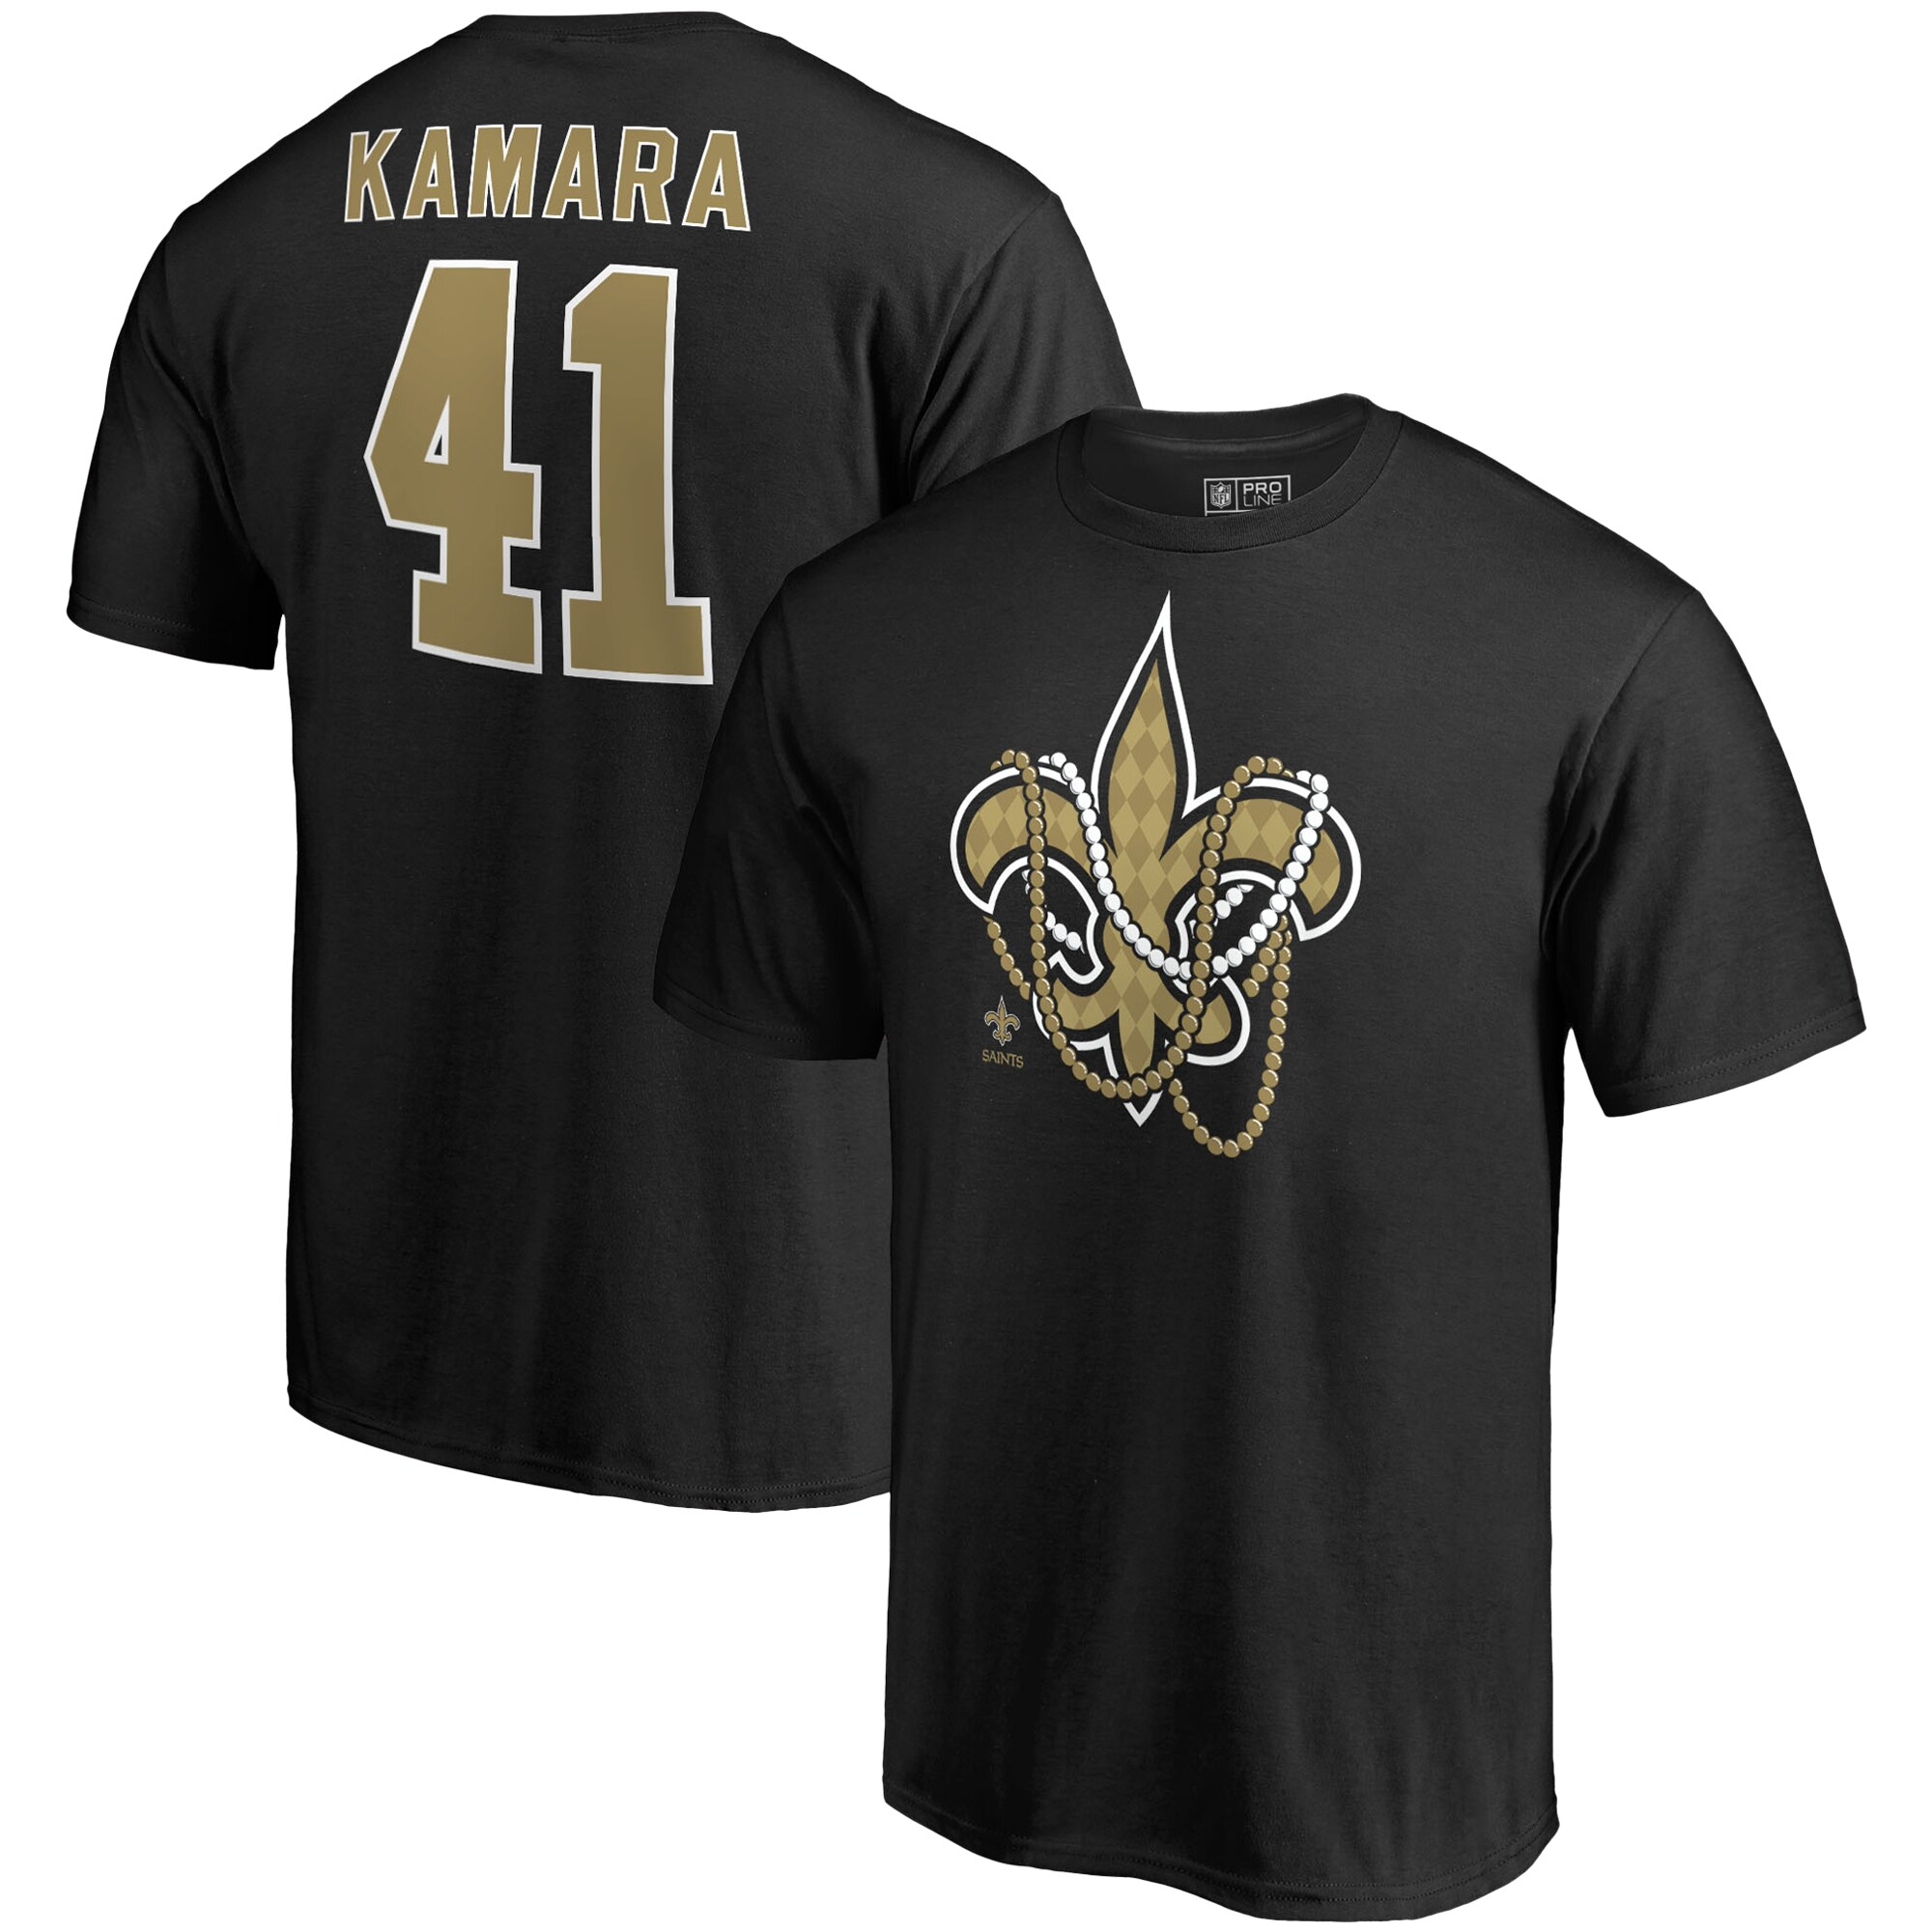 Alvin Kamara New Orleans Saints NFL Pro Line by Fanatics Branded Mardi Gras Team Icon Name & Number T-Shirt - Black